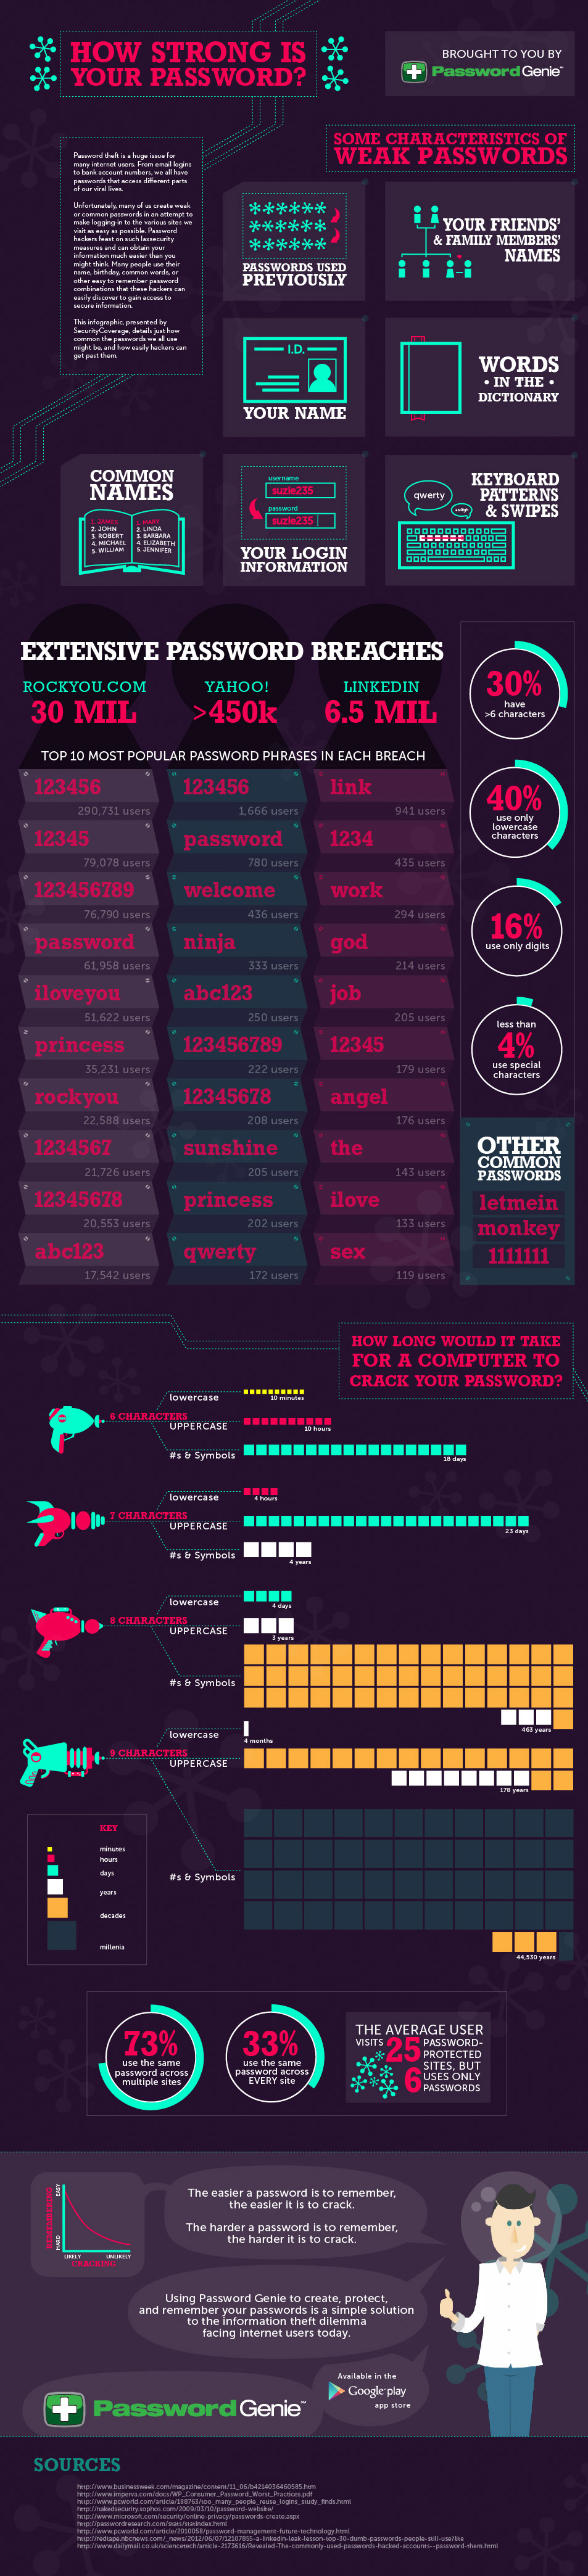 Make Strong Password-Infographic